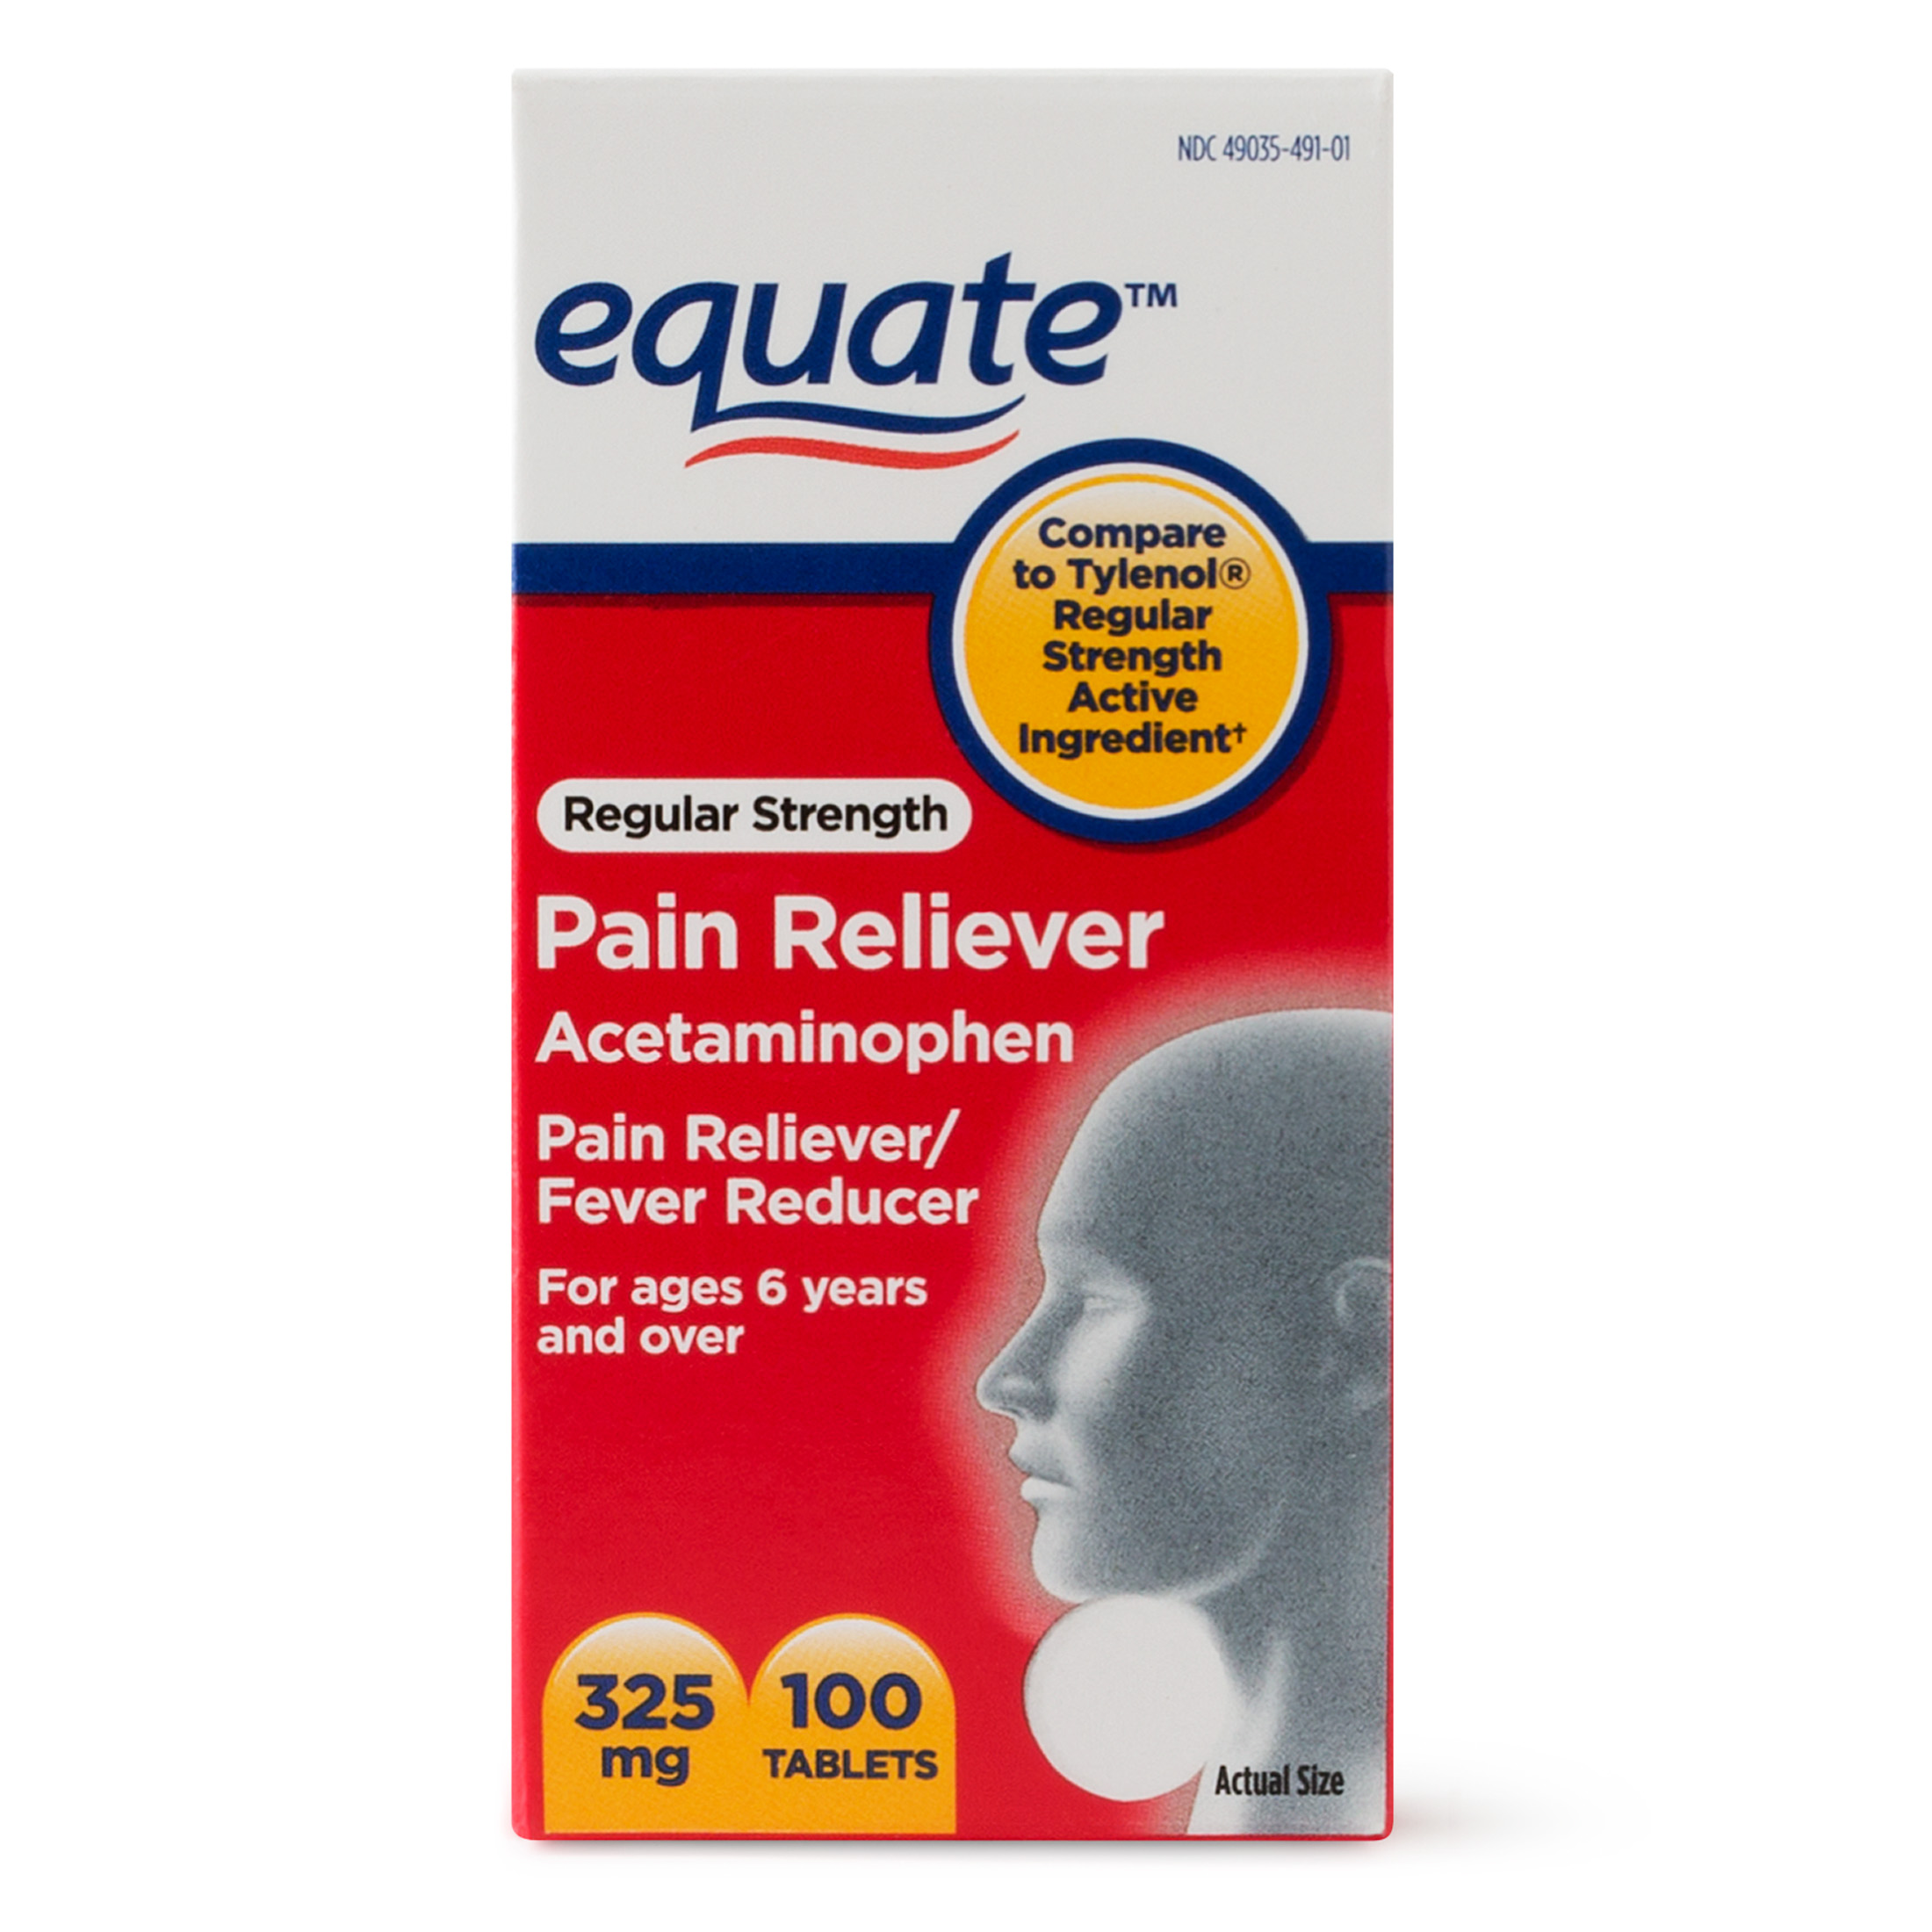 Equate Regular Strength Pain Relief Acetaminophen Tablets, 325 mg, 100 Ct